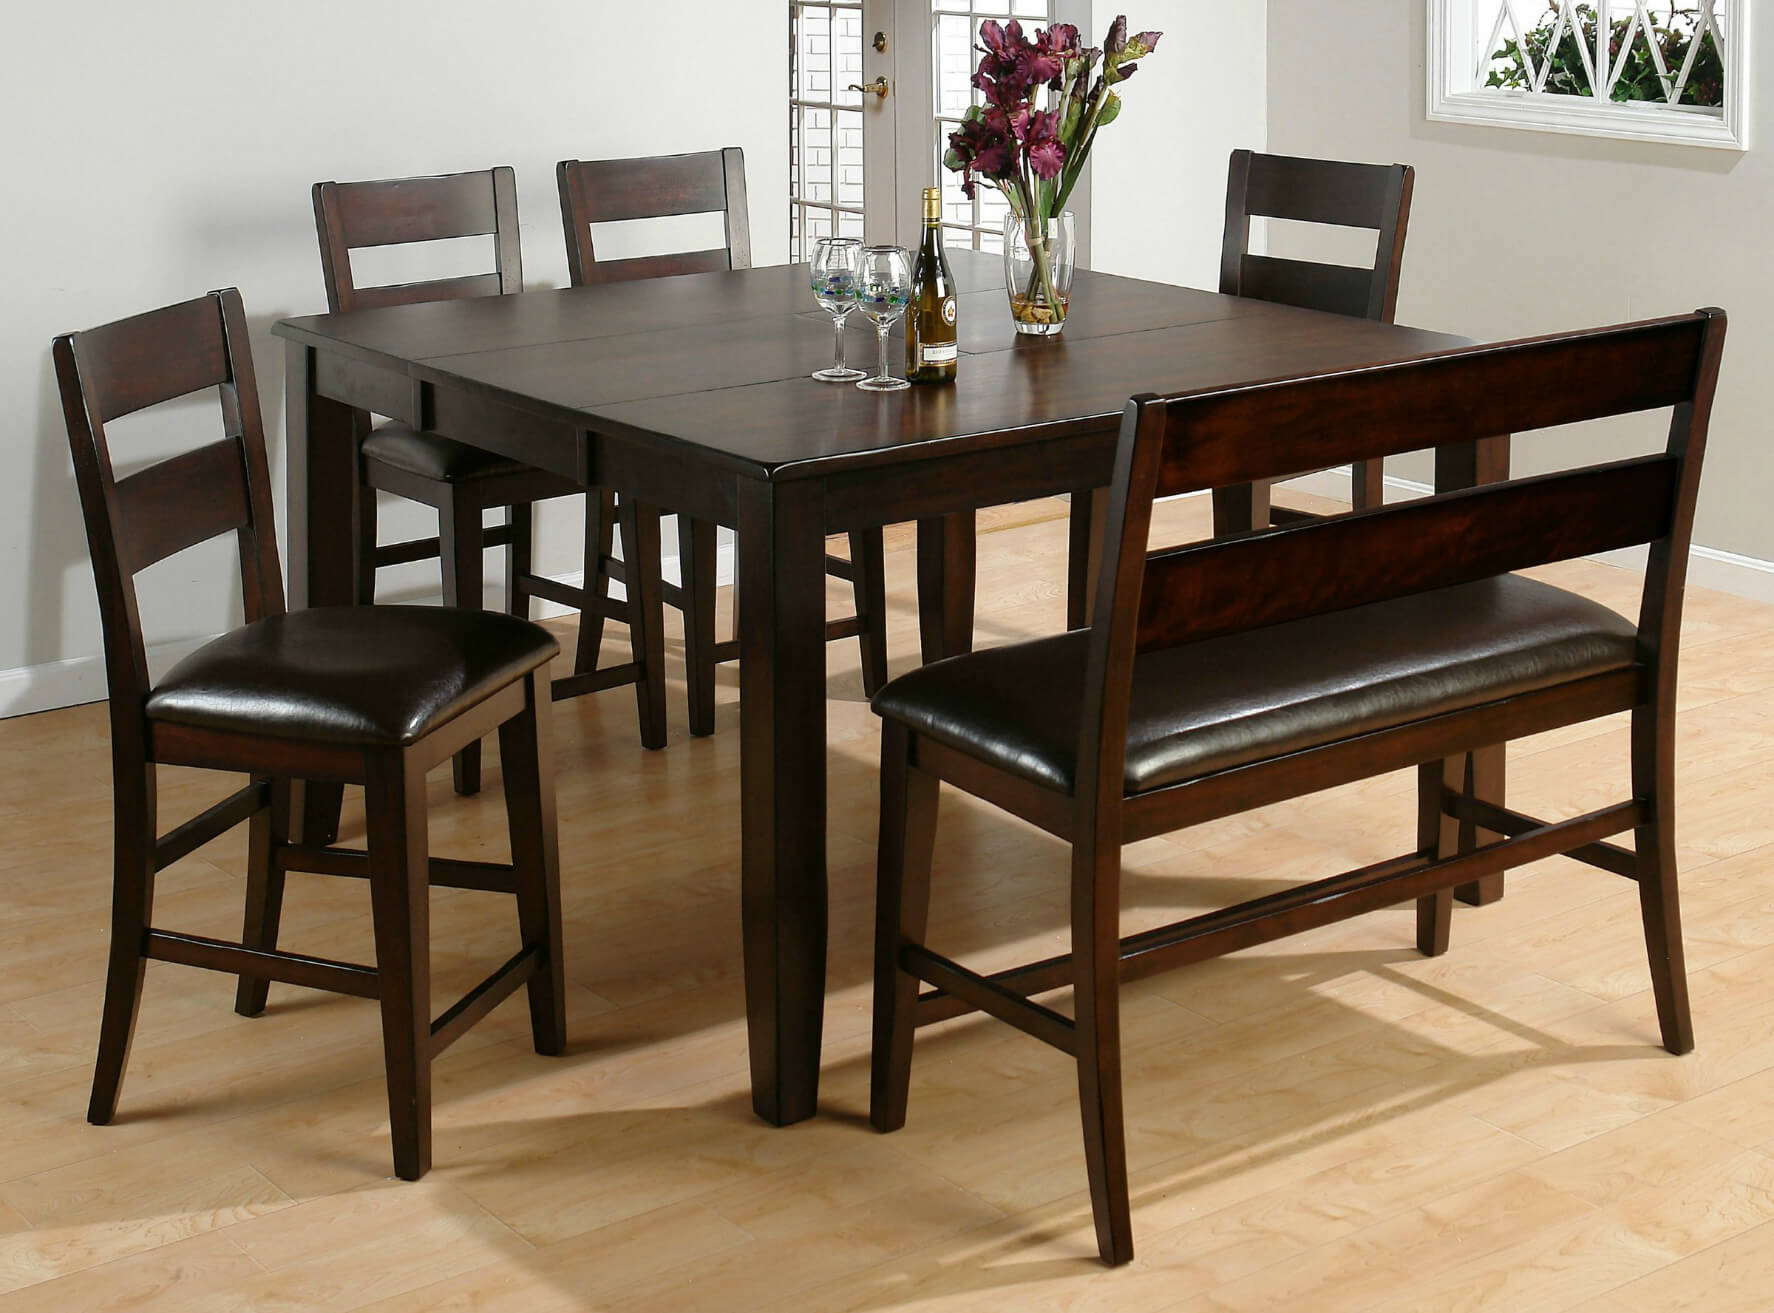 Small Dining Table And Chairs Part - 40: Hereu0027s A Counter Height Square Dining Room Table With Bench. Moreover, The  Bench Includes